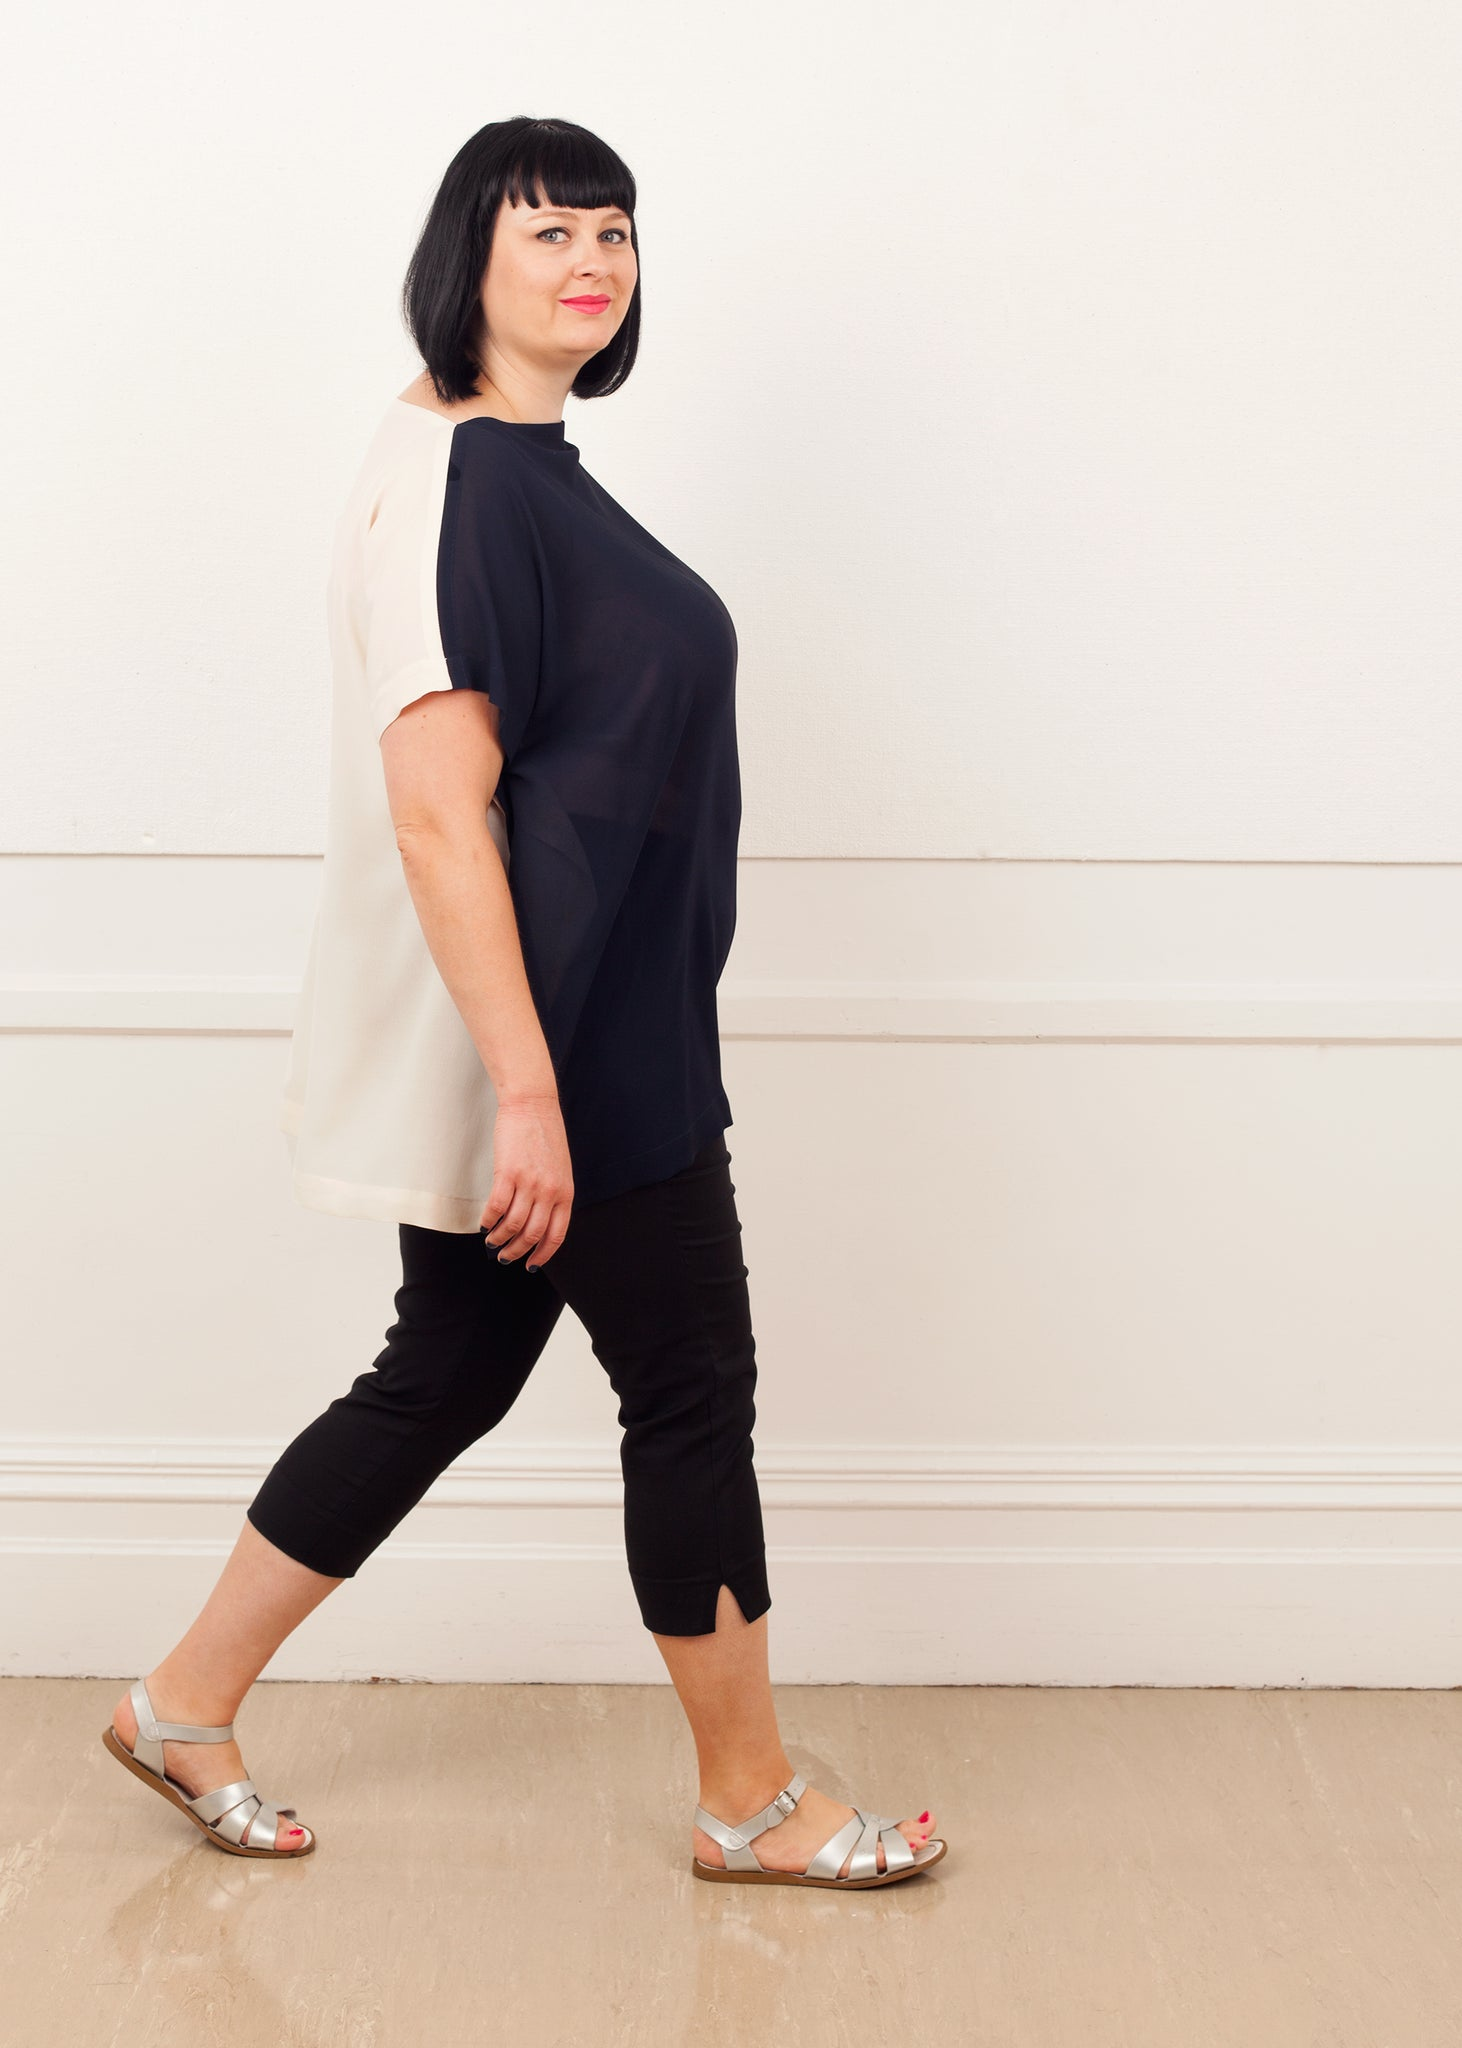 Fraser Crowe Slouch Oversize Top Cream Navy, ethical fashion, sustainable fashion, designer clothes, plus size clothing, textile print clothing, luxury online fashion, slow fashion